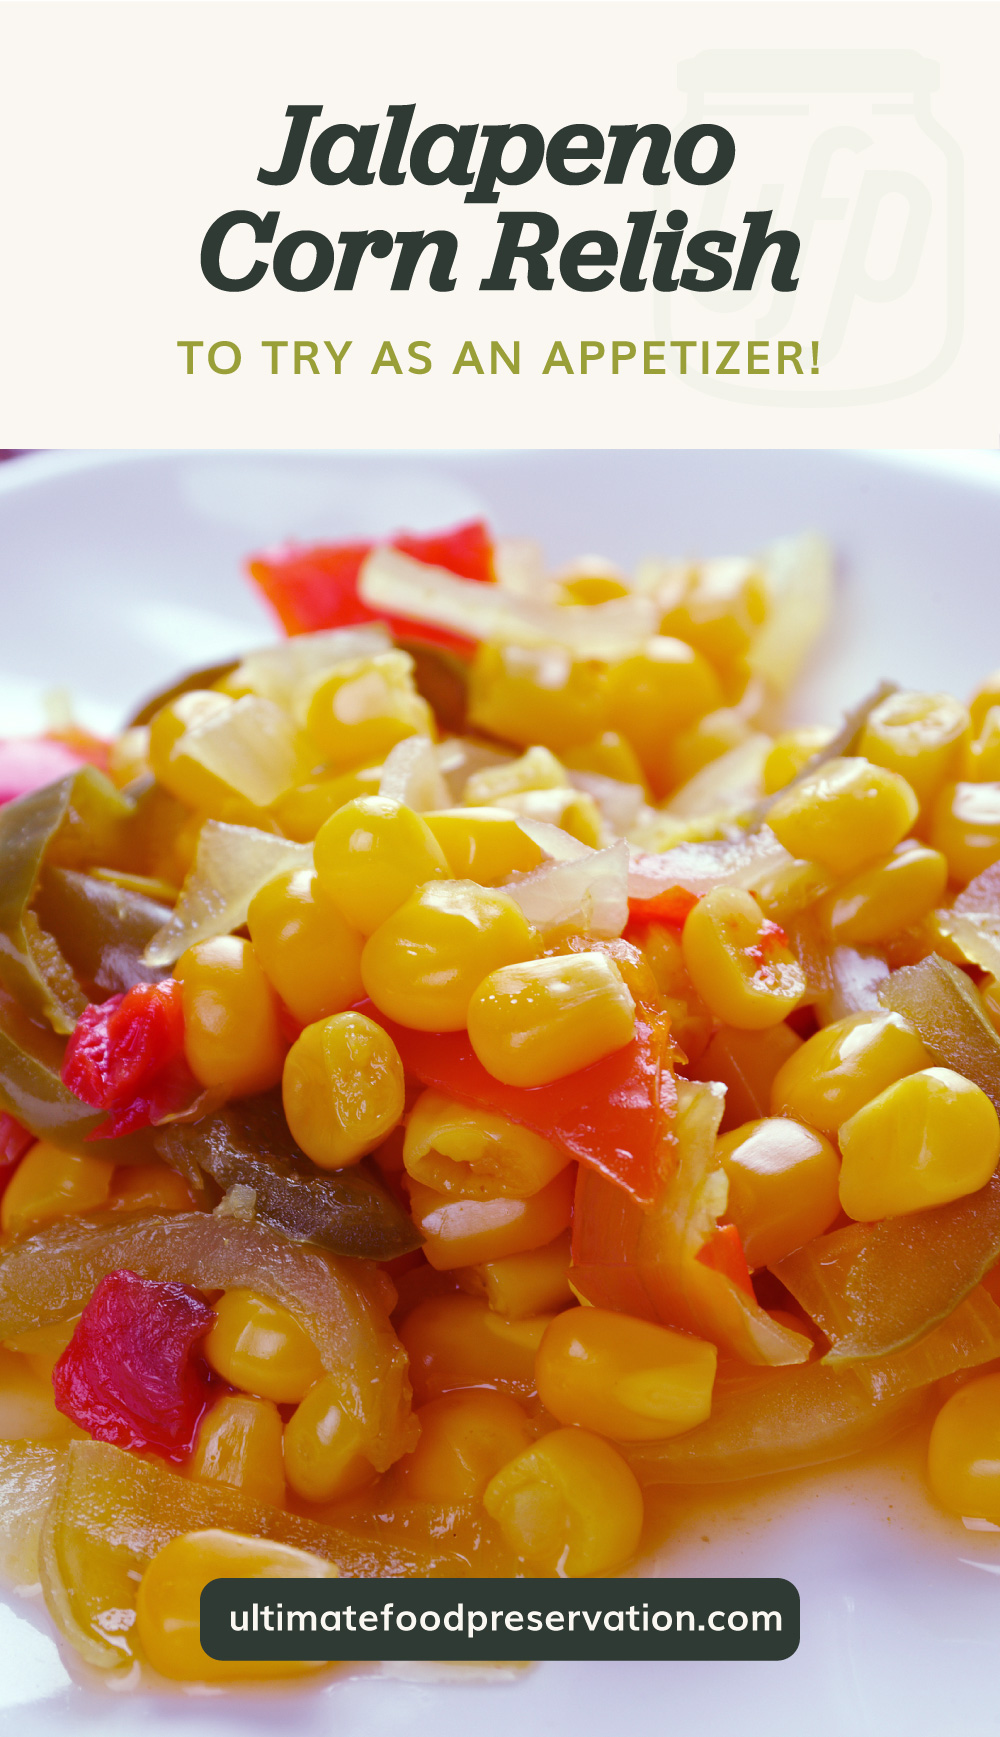 """Text area which says """"Jalapeno Corn Relish To Try As An Appetizer!"""" next to a close-up view of jalapeno corn relish on white saucer followed by another text area which says ultimatefoodpreservation.com"""